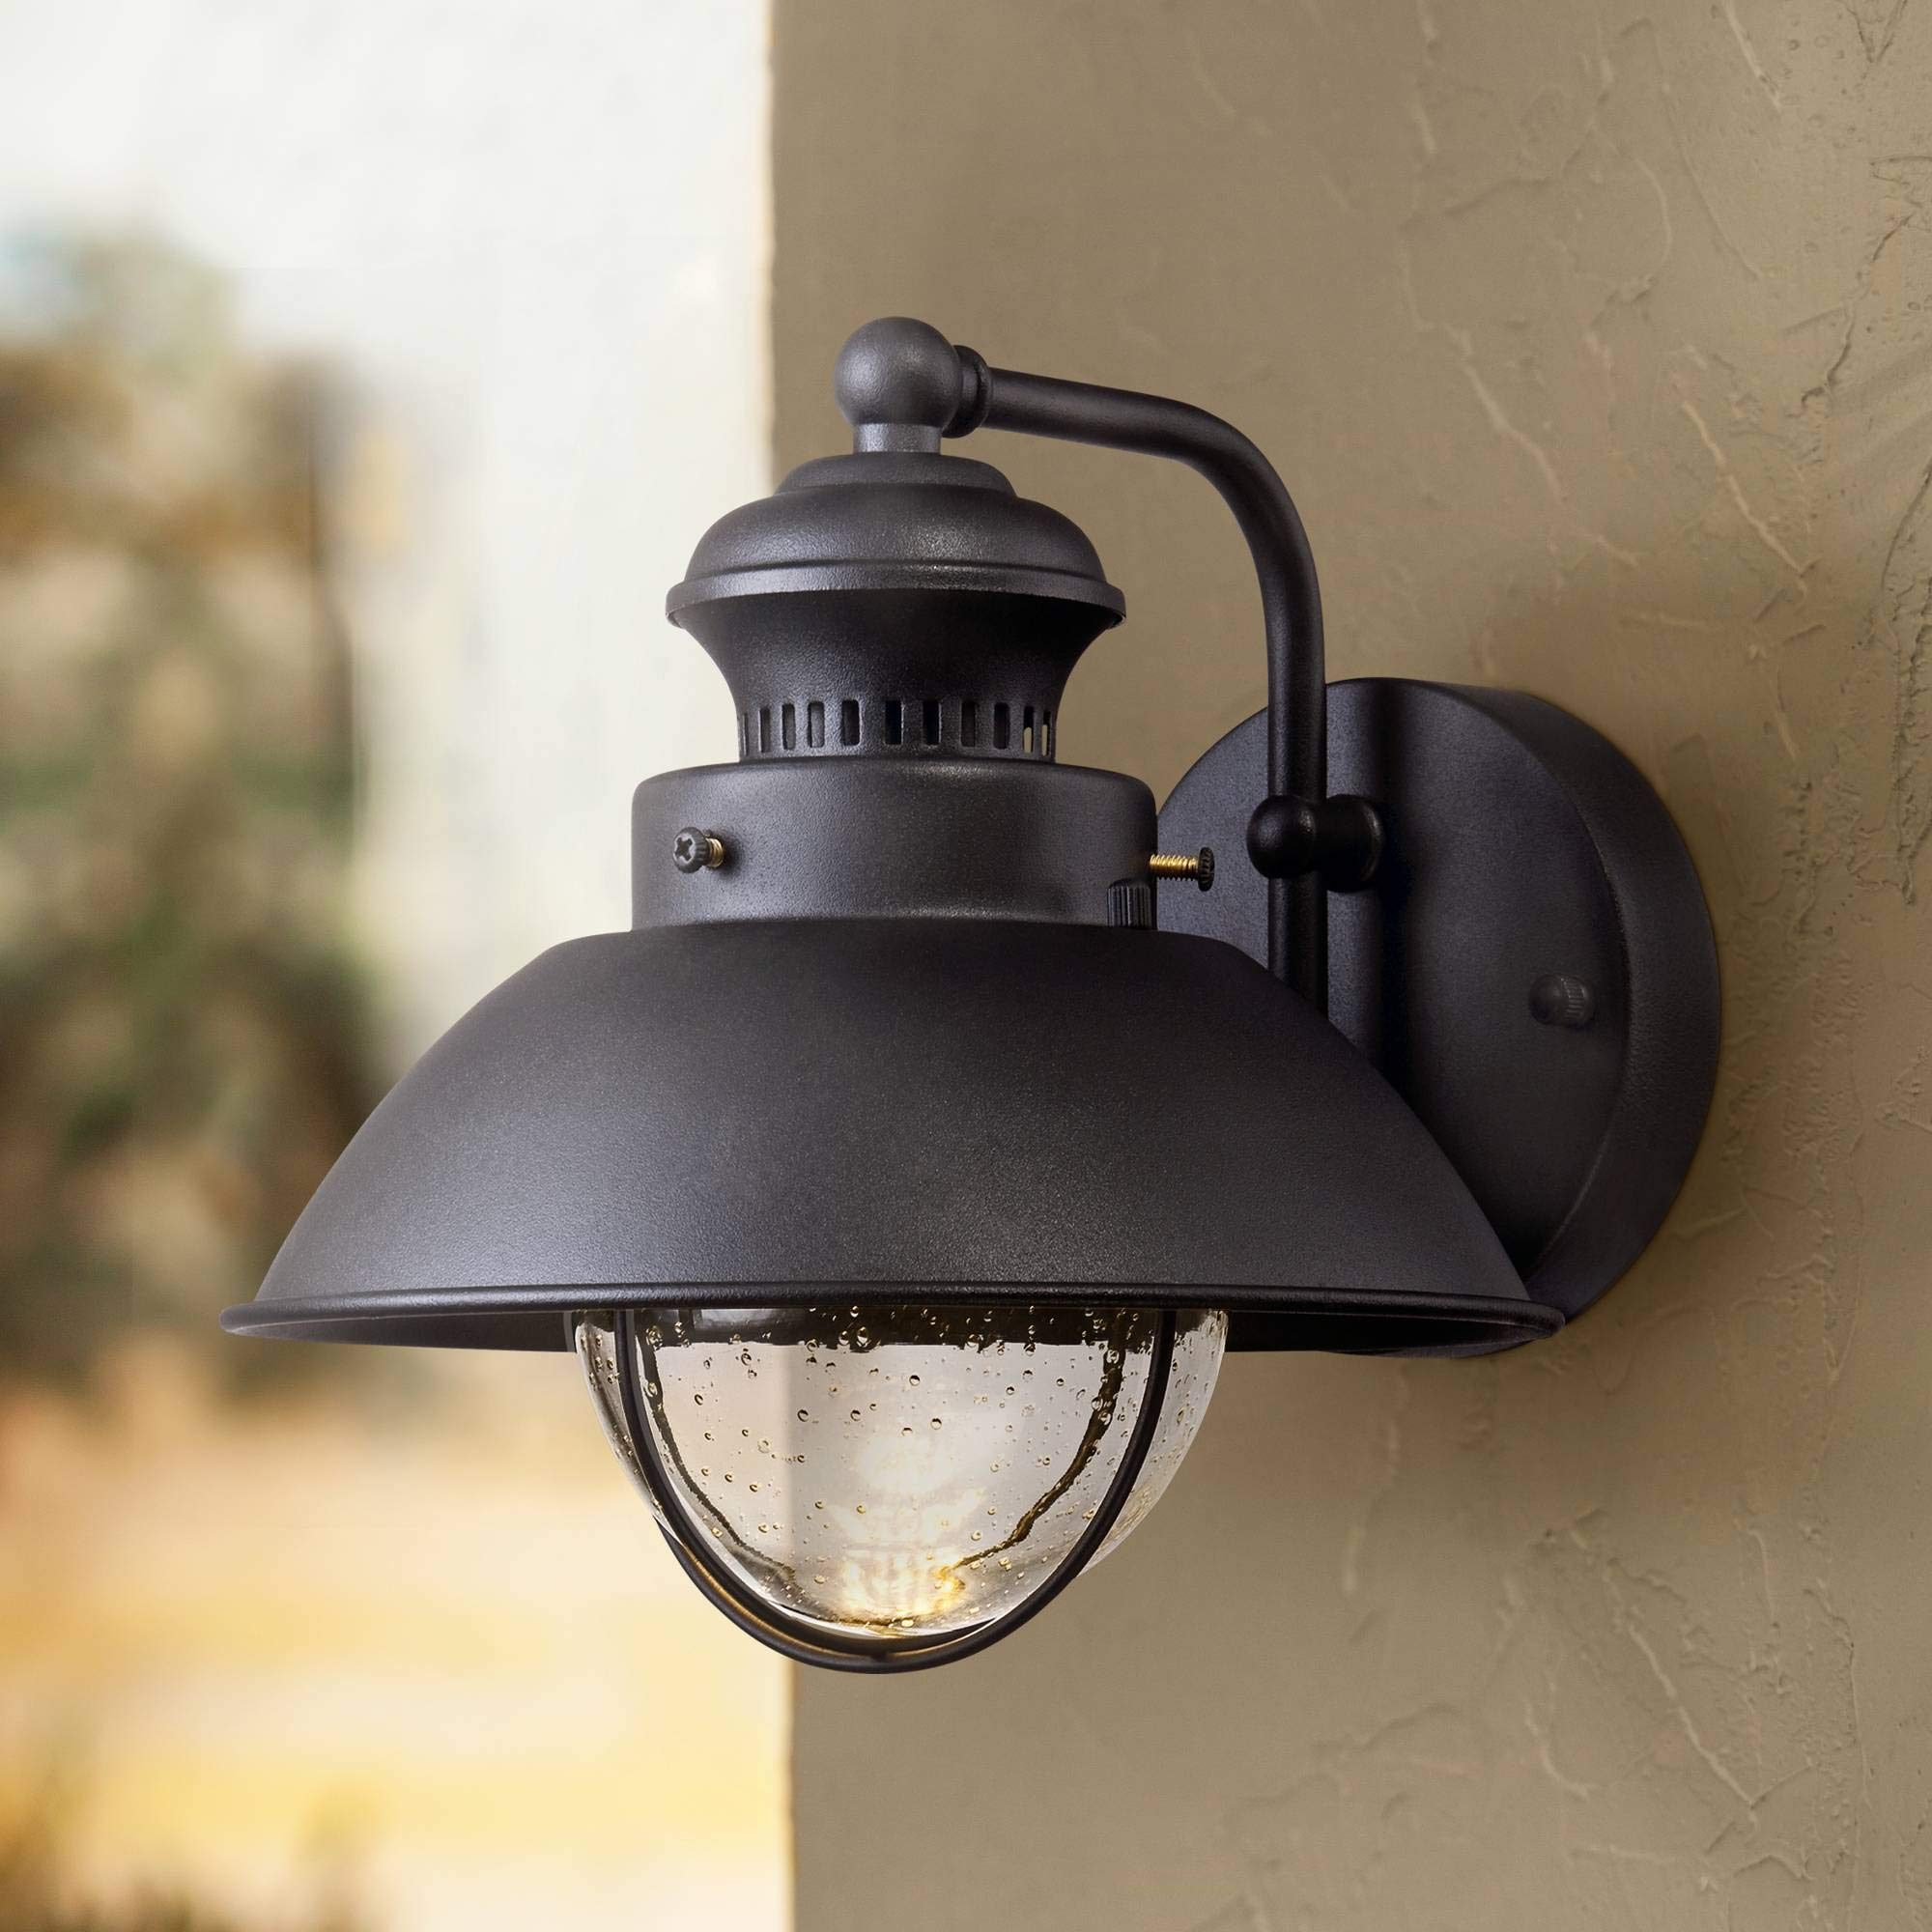 Fordham Rustic Outdoor Wall Light Fixture LED Black 8'' Seedy Glass Sconce for Exterior Deck Porch Patio - John Timberland